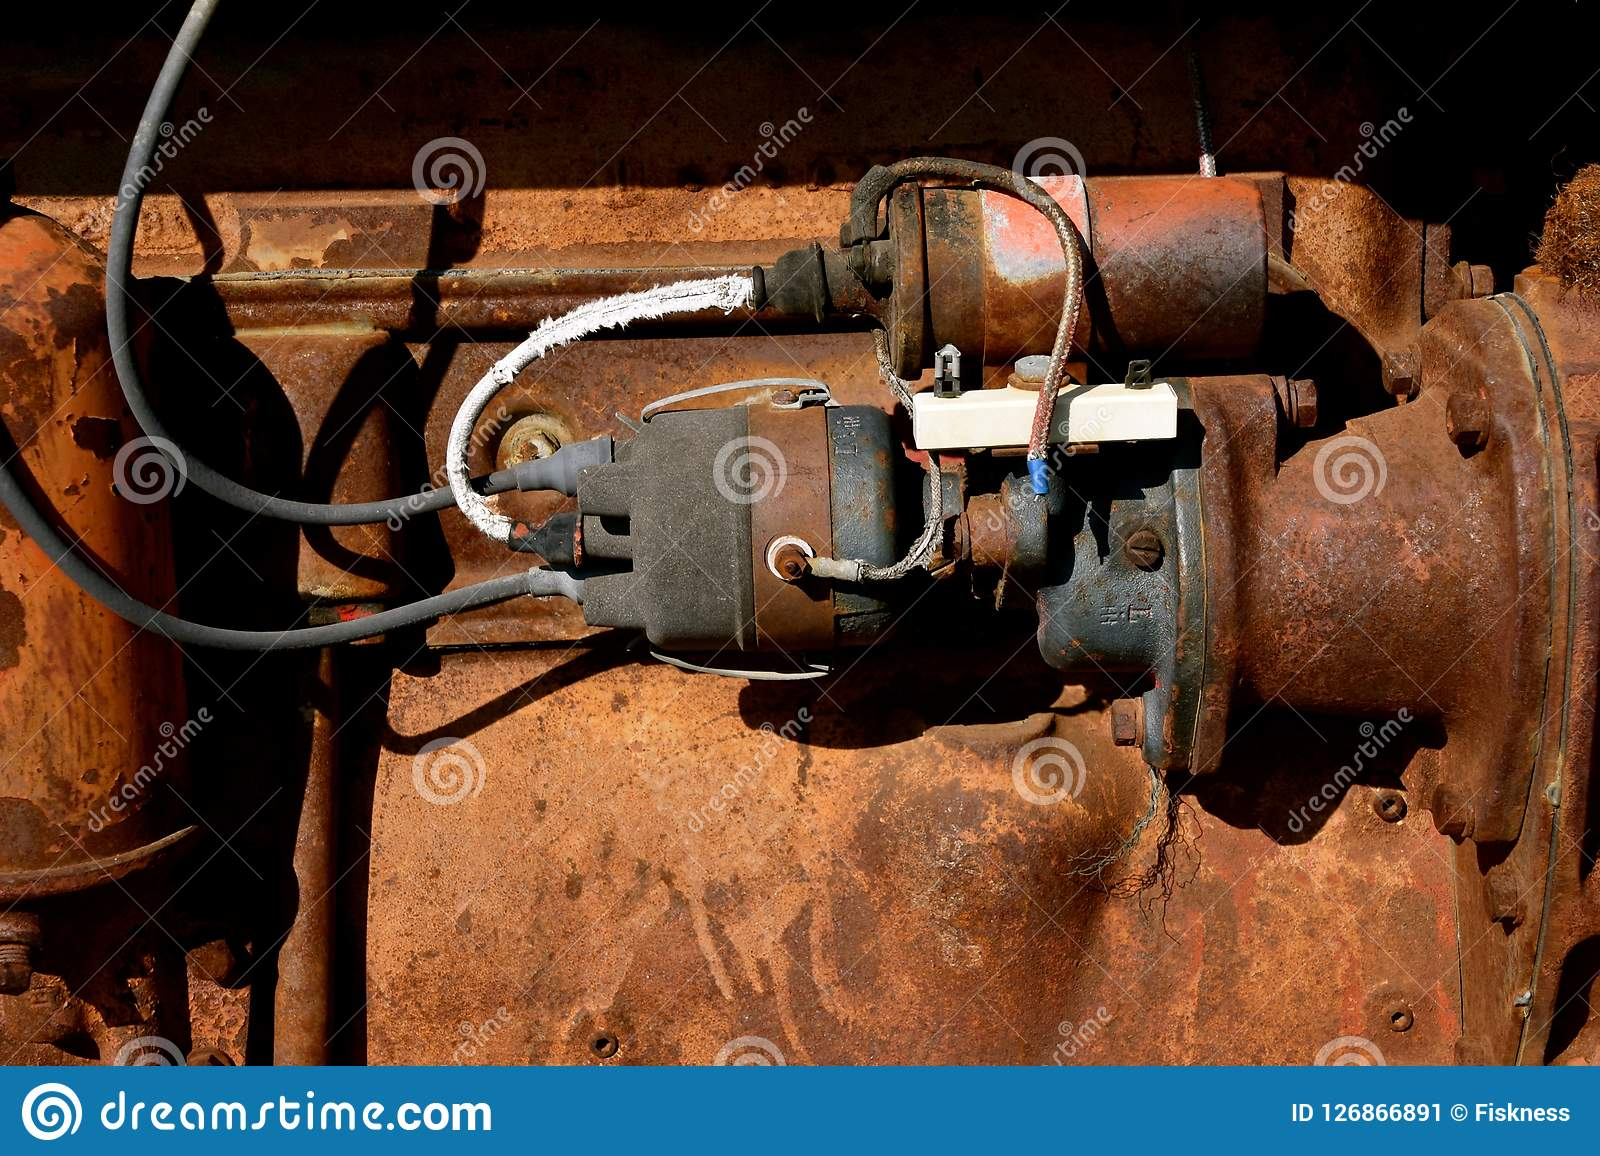 hight resolution of starter wiring and ignition on an old tractor stock image image of